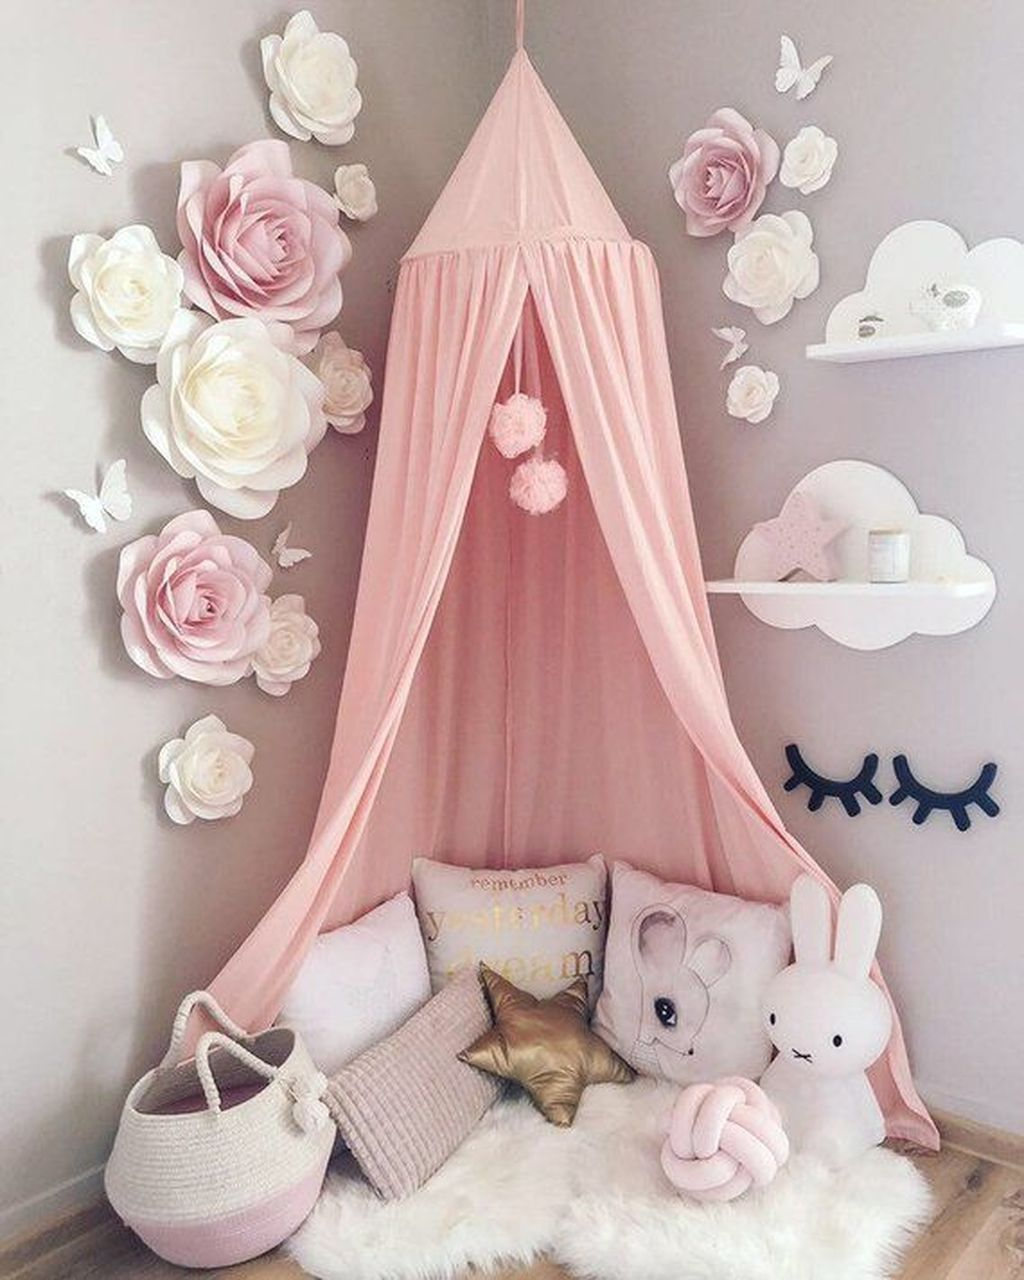 Nice 37 Affordable Kids Room Design Ideas To Inspire Today. #